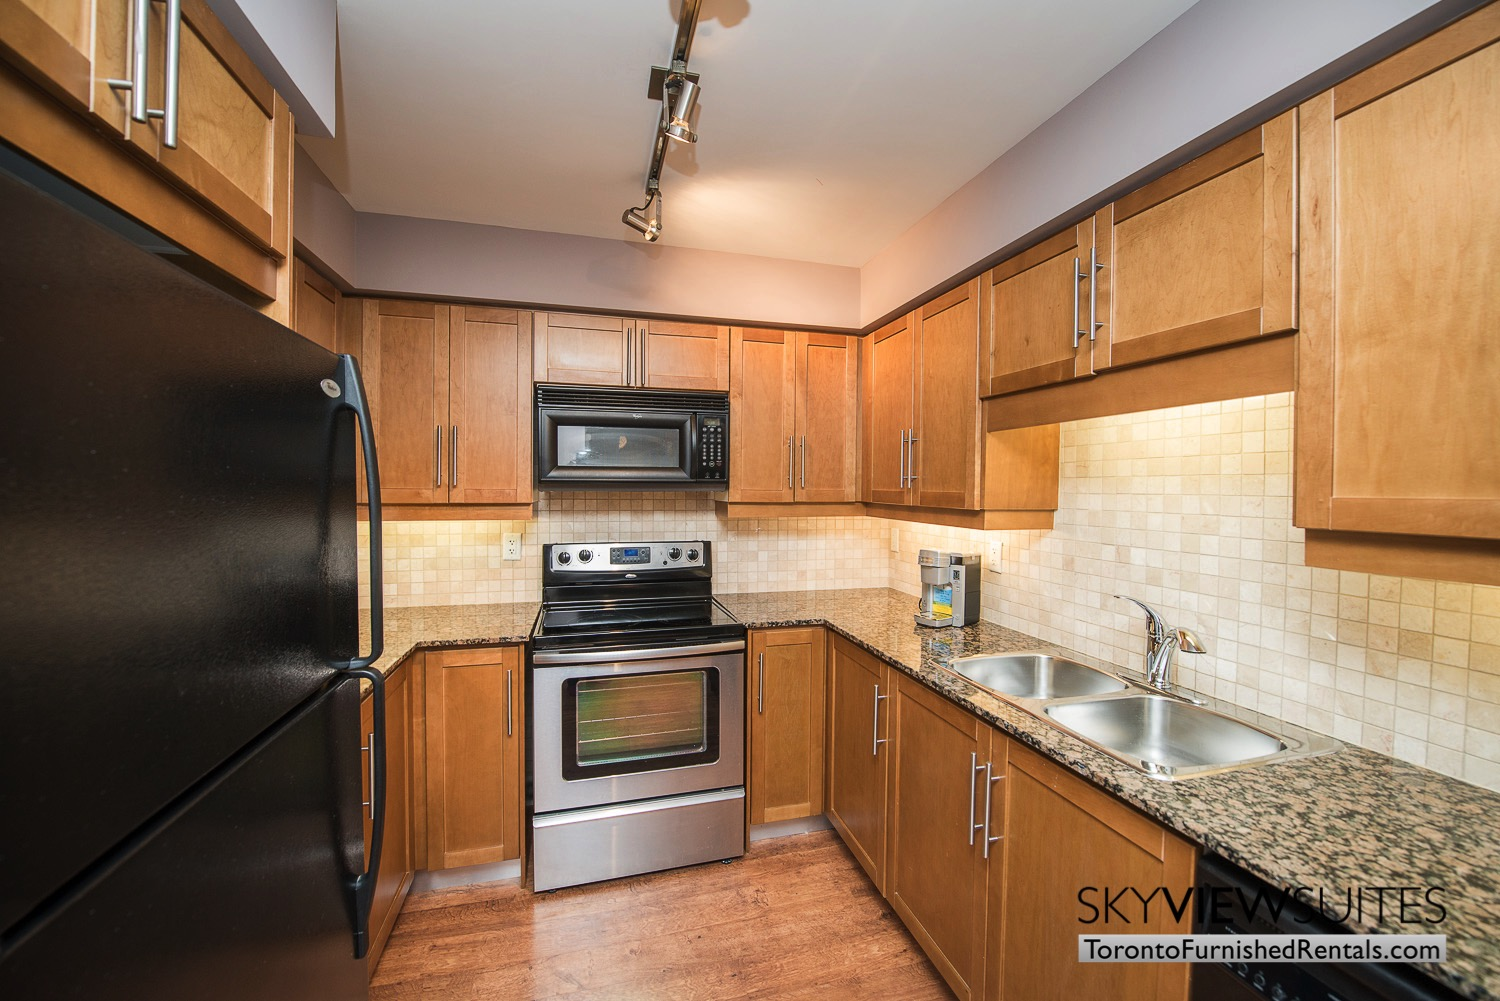 furnished-apartments-kitchen-entertainment-district